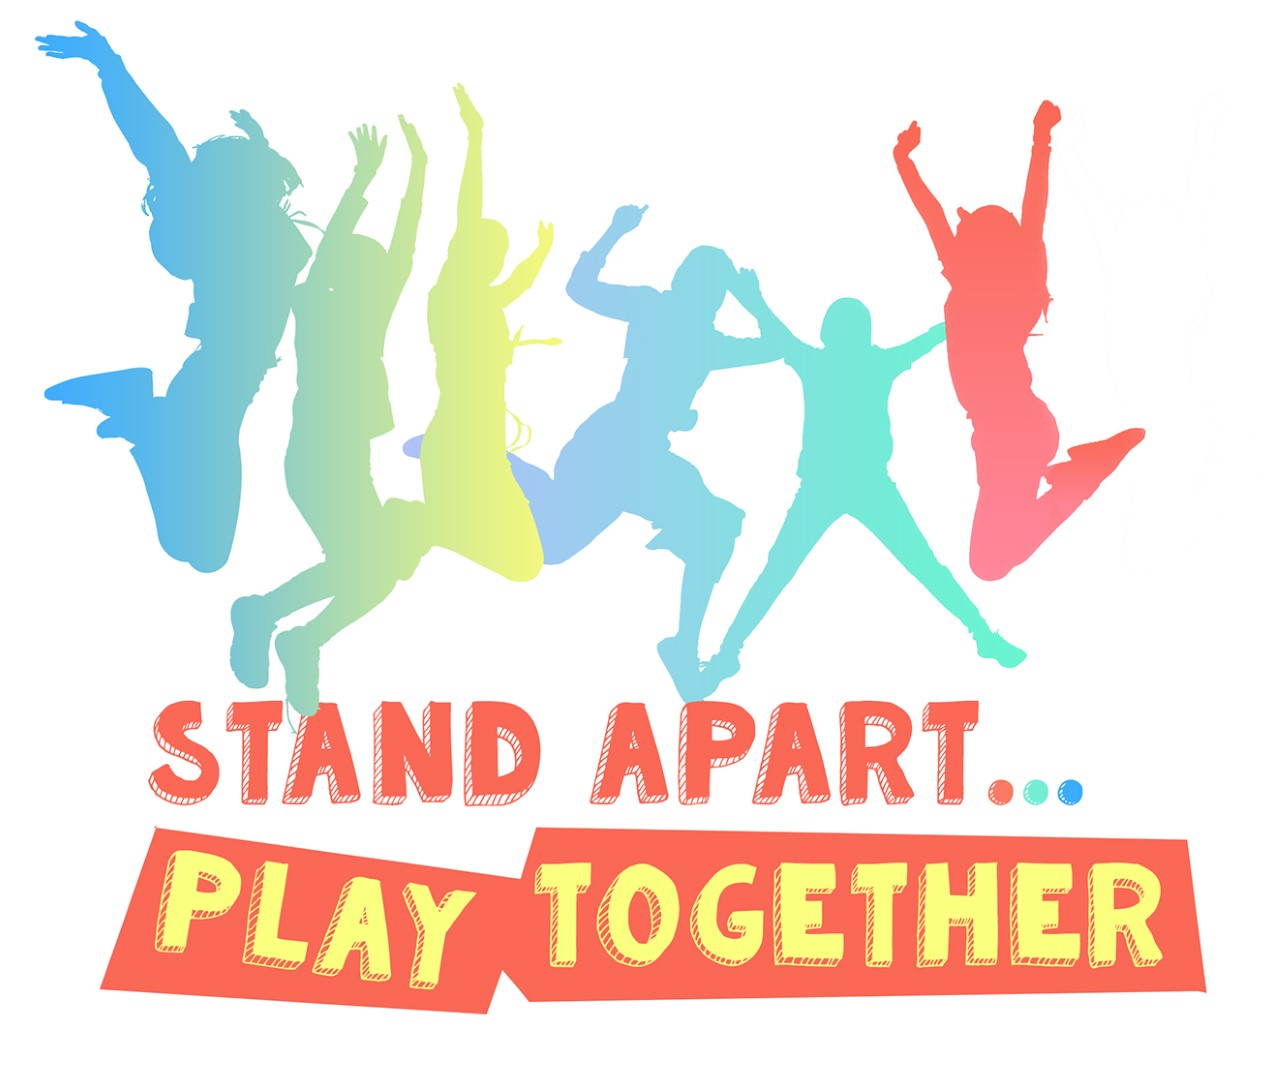 STAND APART: Play Together